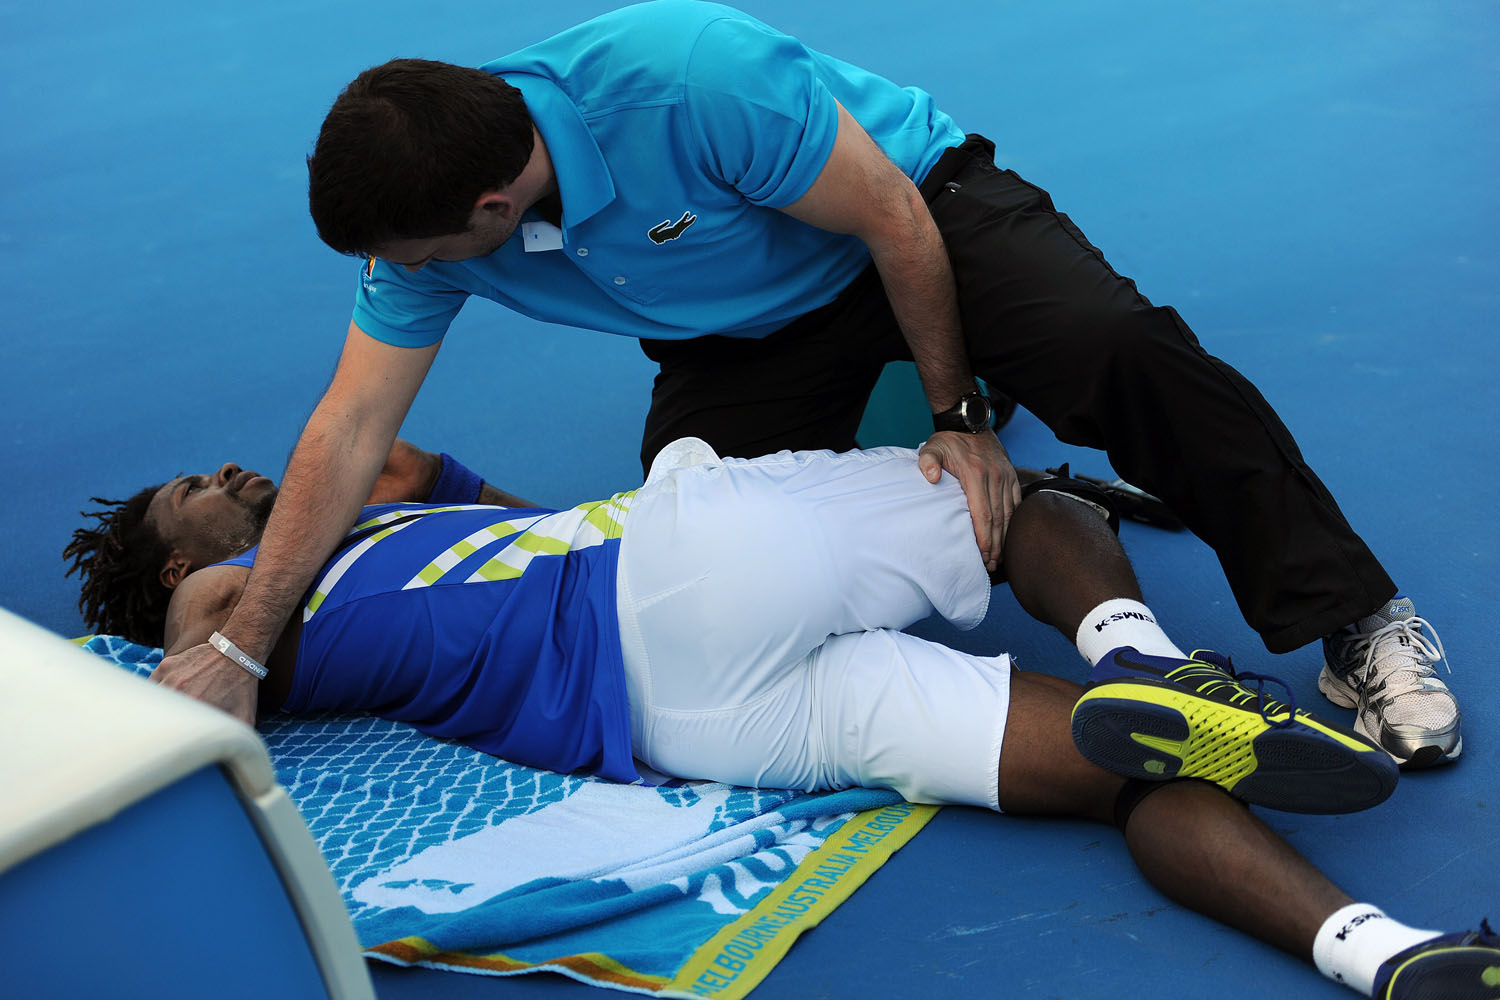 A physiologist works on Gael Monfils during a medical timeout in the break against Mikhail Kukushkin of Kazakhstan in their third round men's singles match at the 2012 Australian Open.